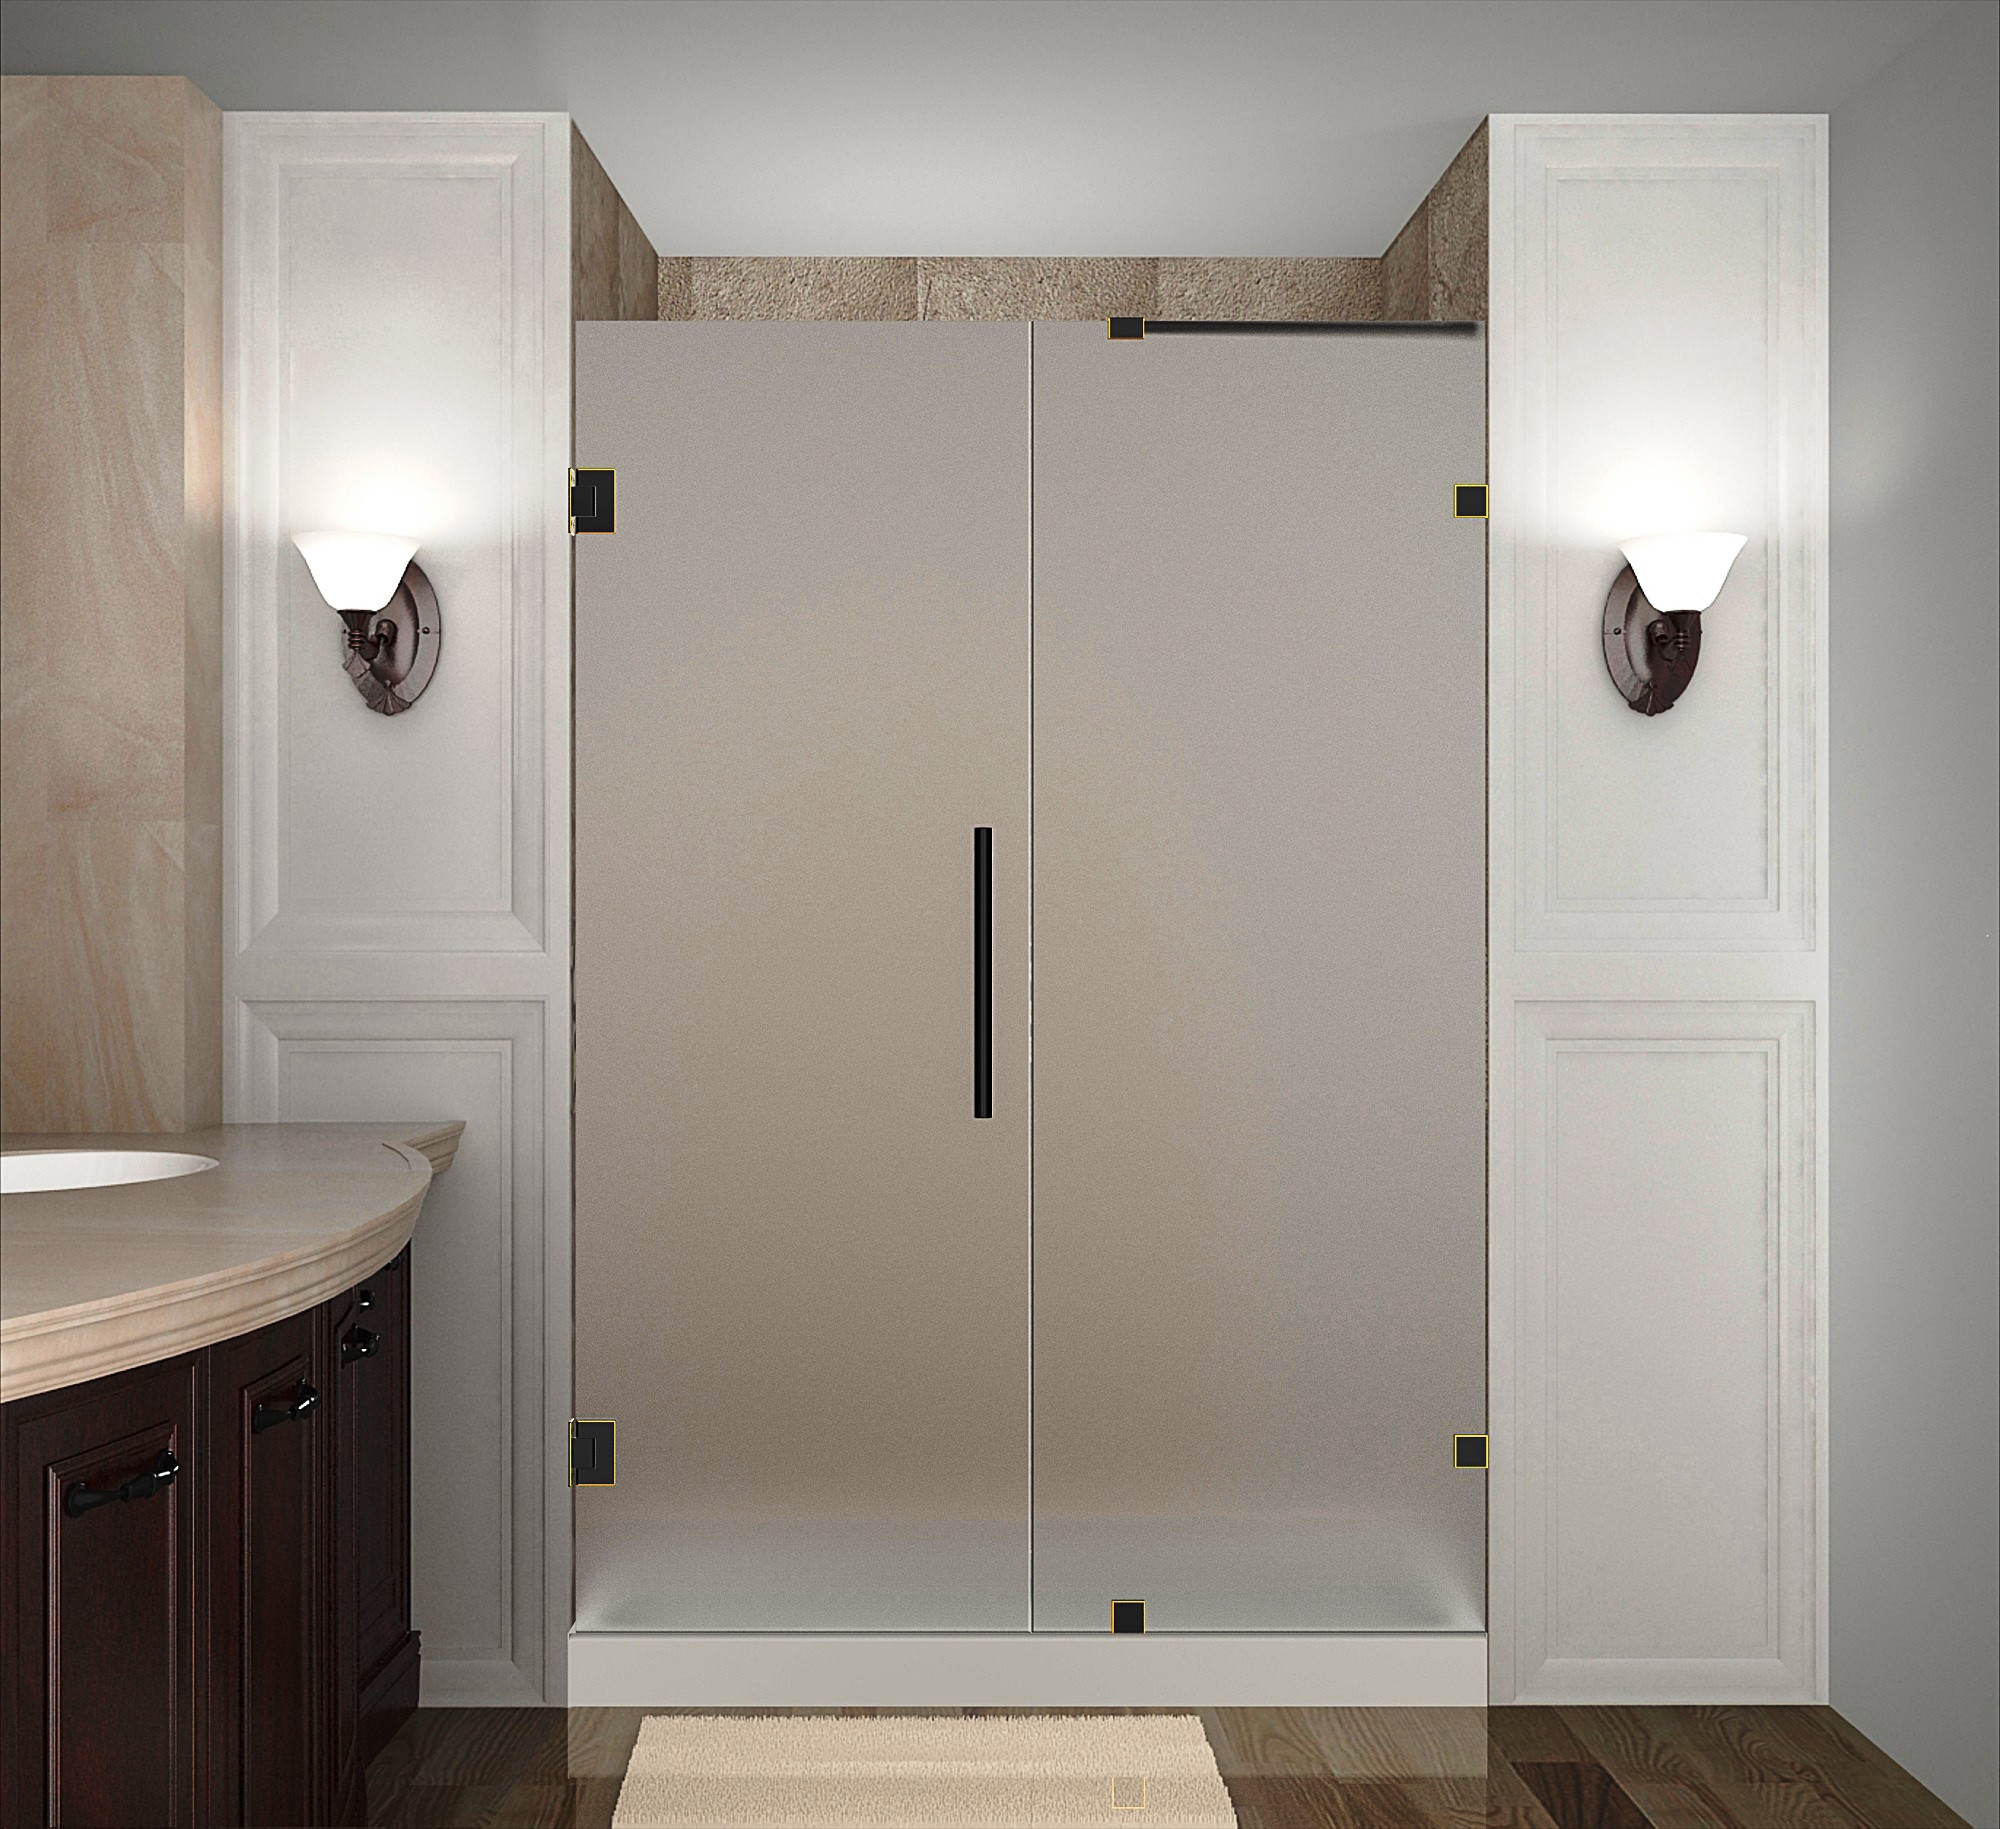 Aston Global SDR985F-ORB-50-10 Frameless Hinged Frosted Glass Shower Door In Oil Rubbed Bronze